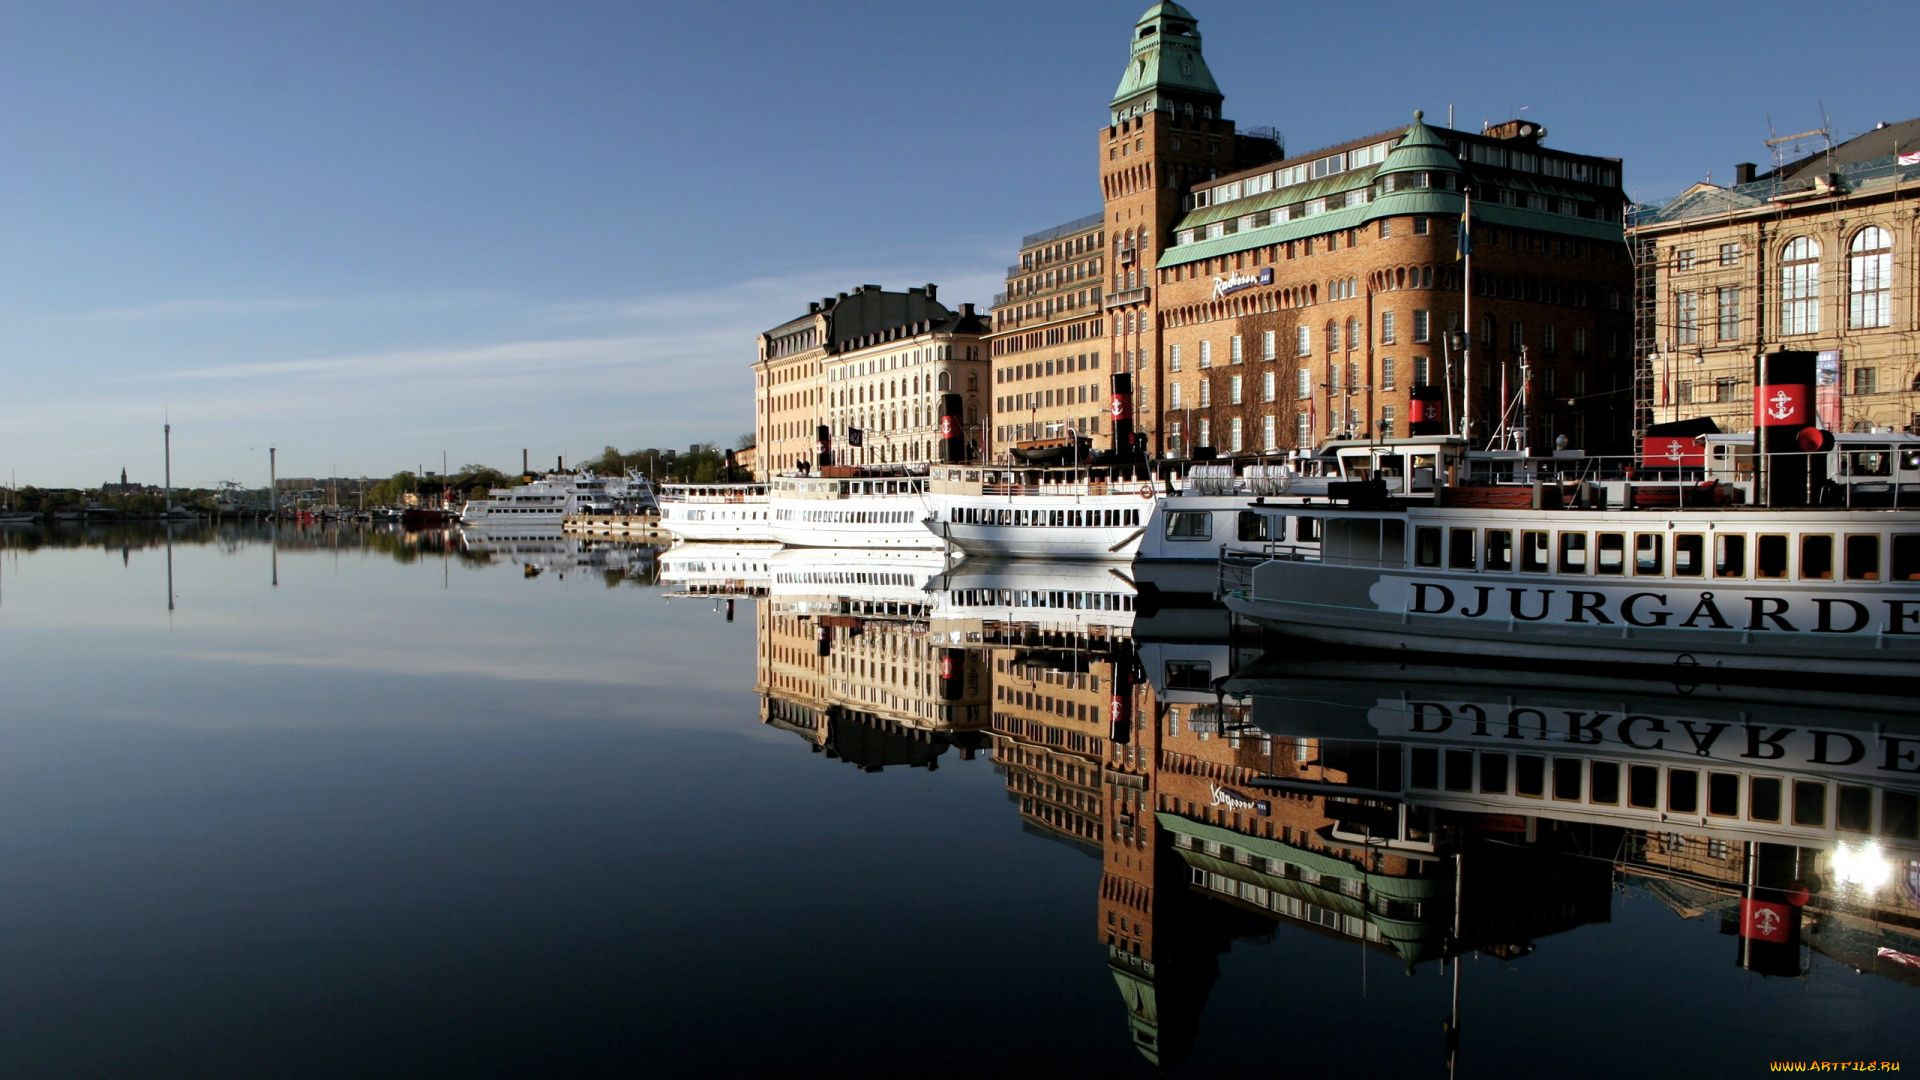 Sweden download free wallpaper image search